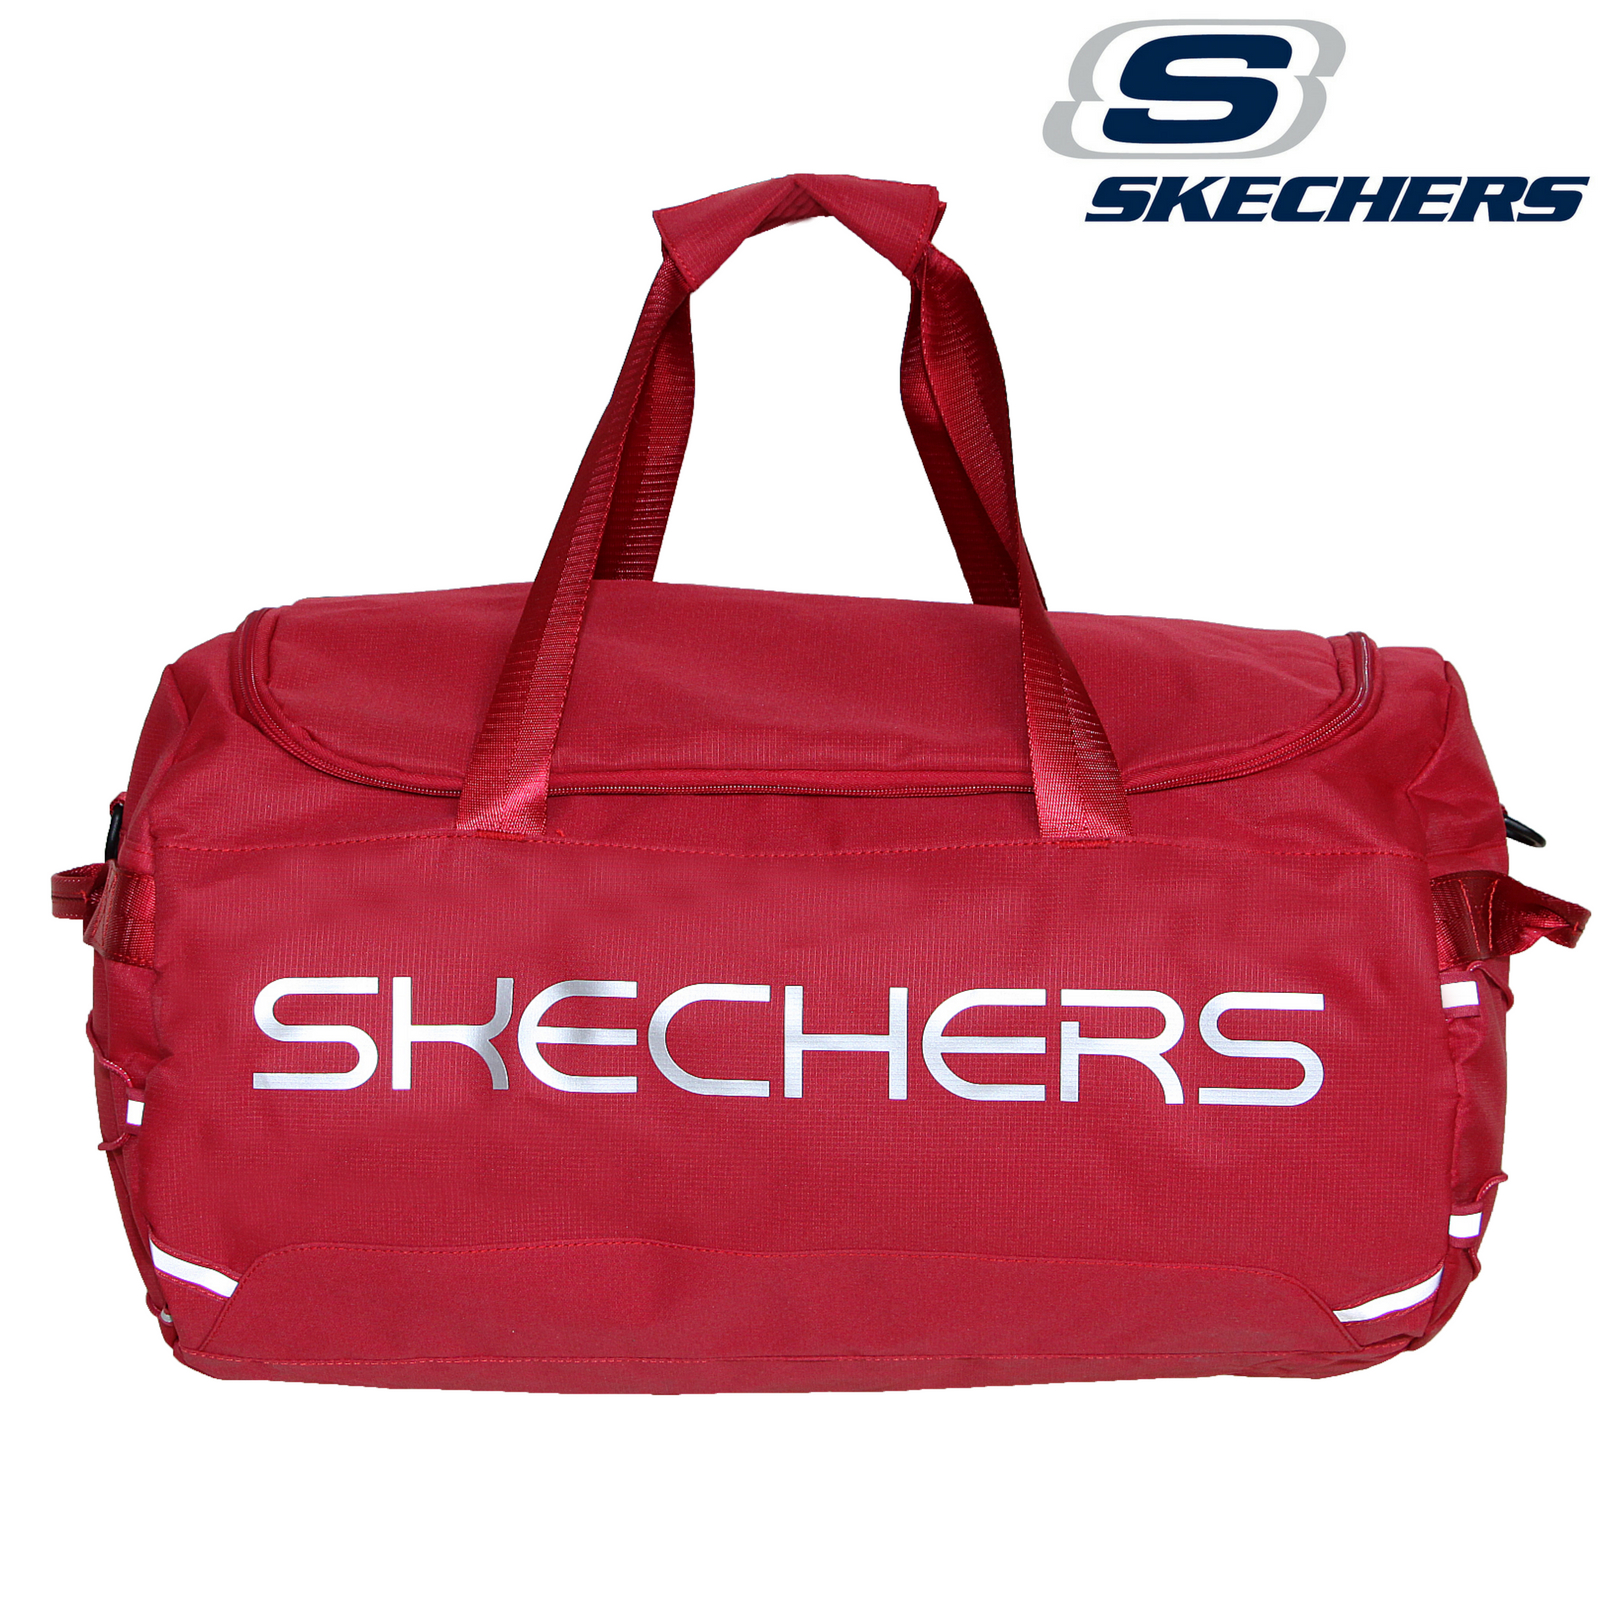 7e99d91c63 Skechers Santa Monica Travel Bag Gym Duffle Sports Duffel - Red